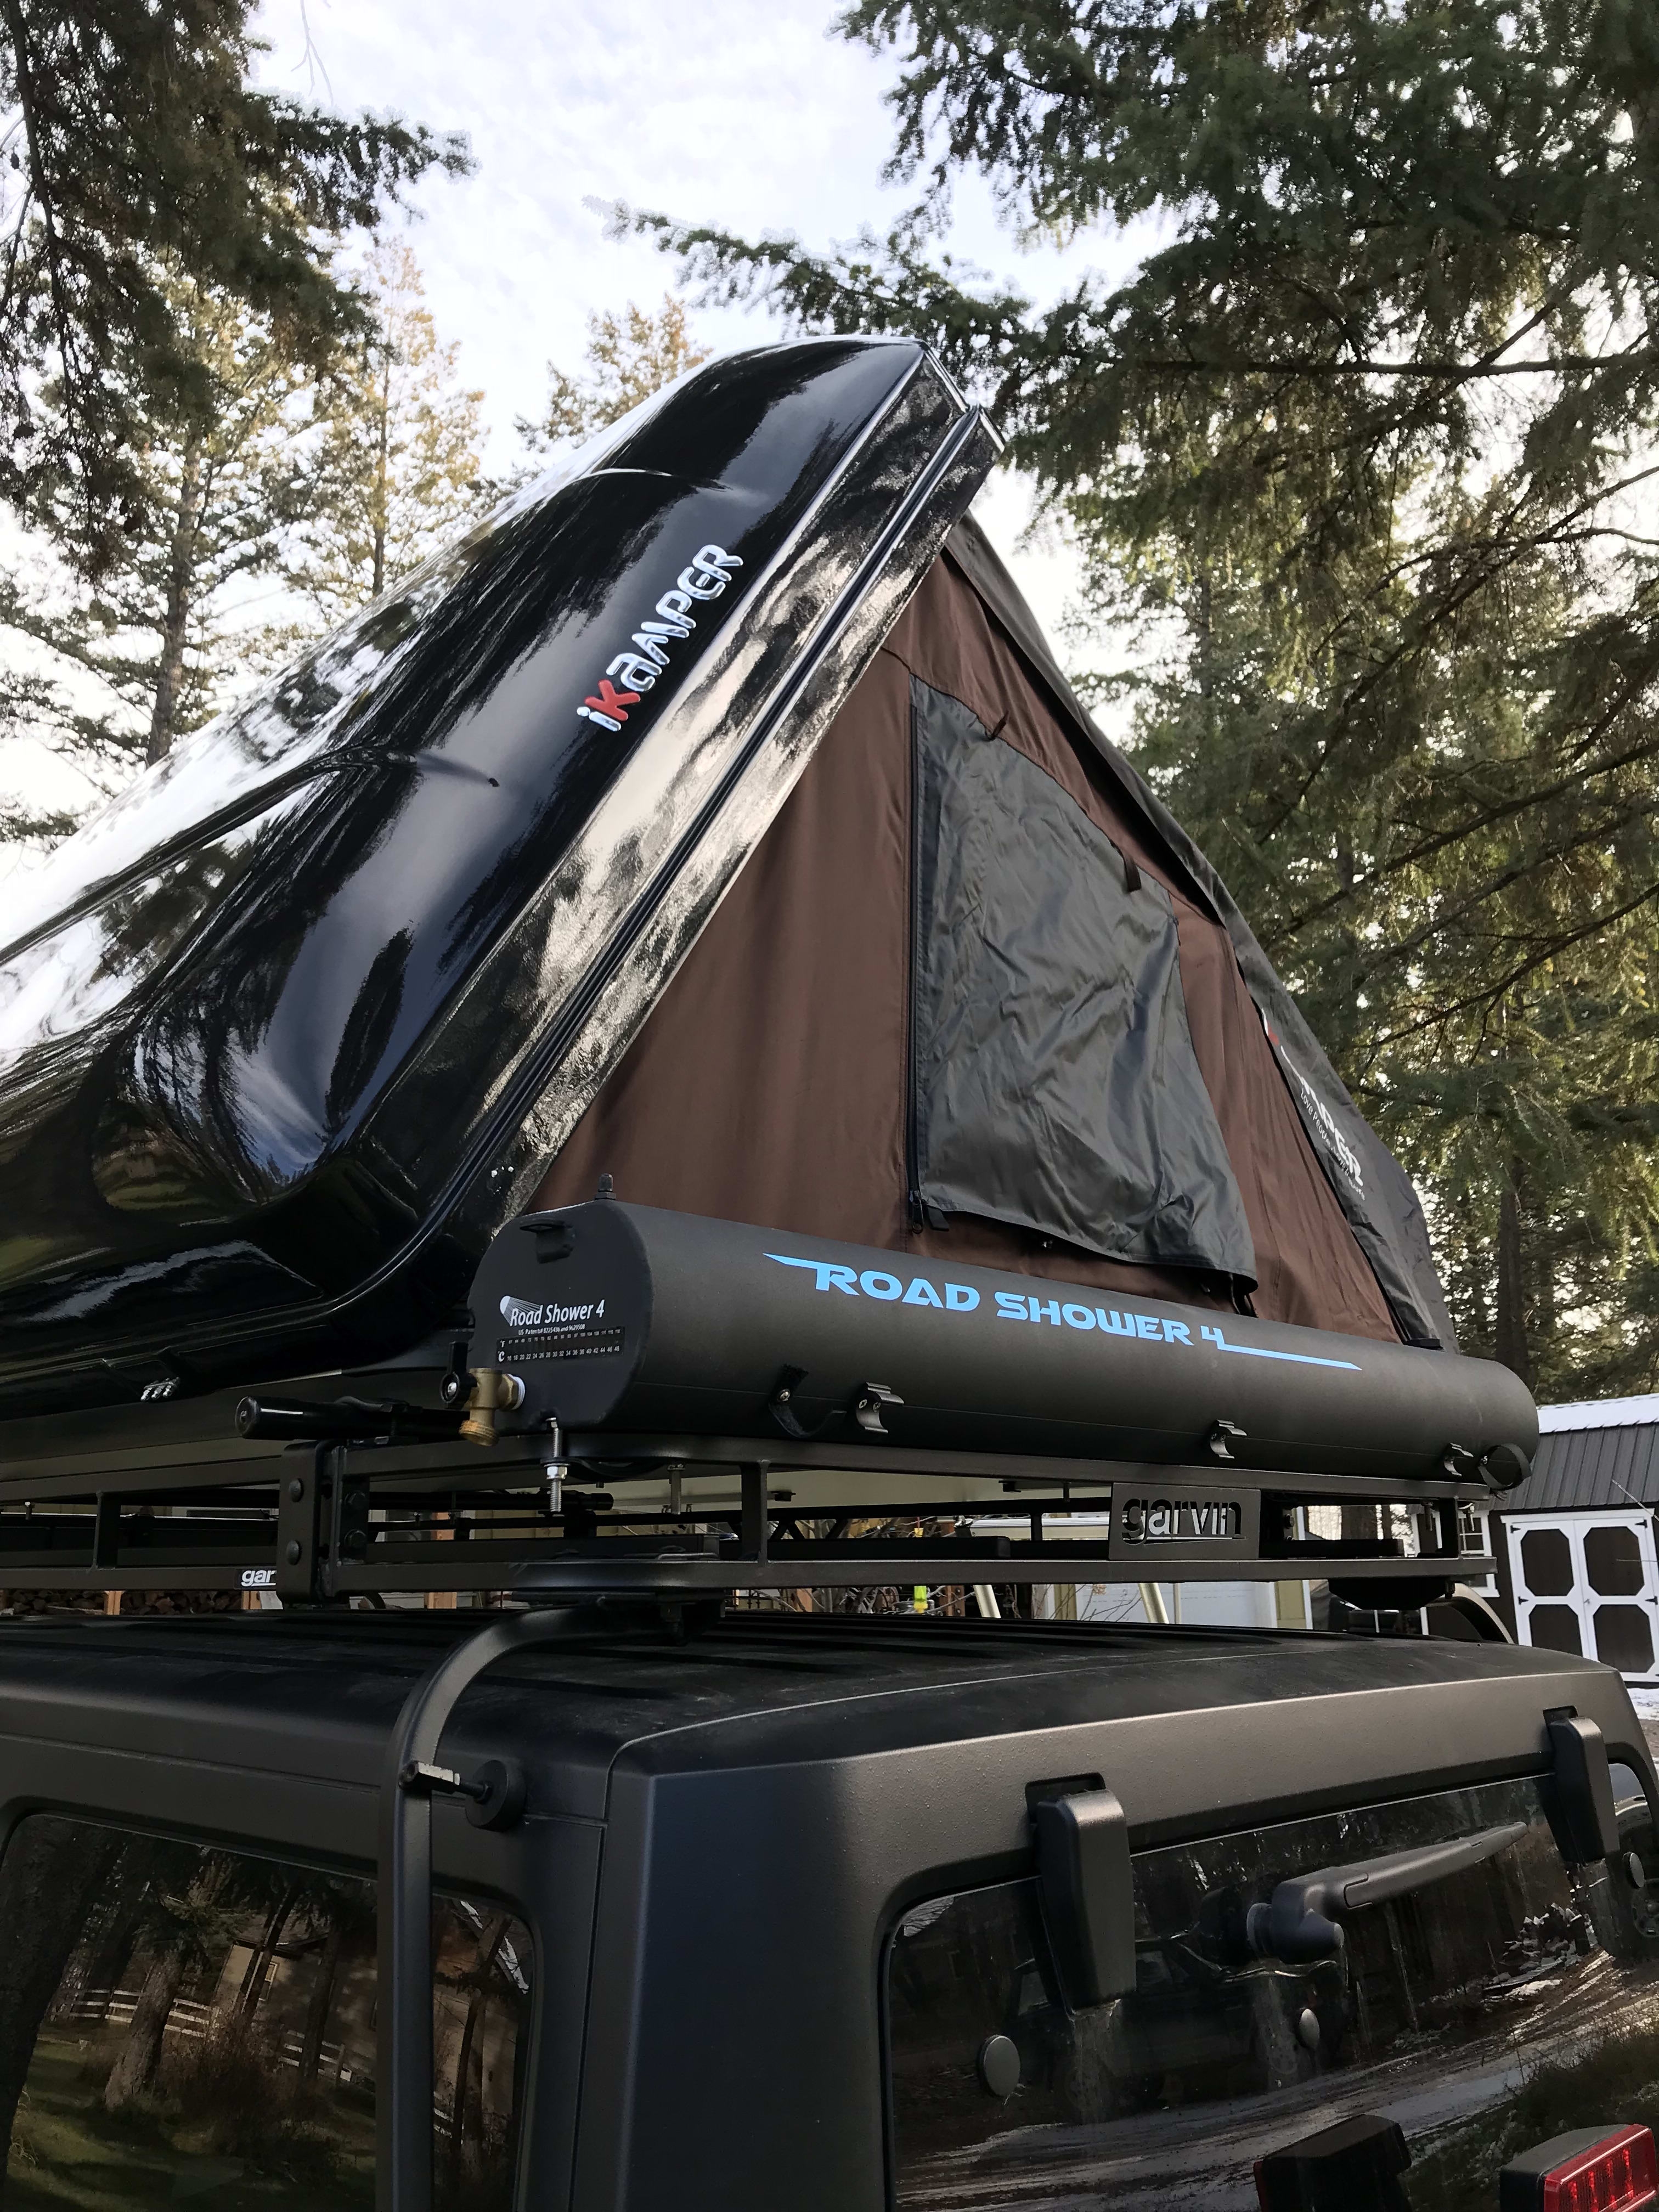 RoadShower solar showers can be added to packages (limited to July/August). Jeep JKU  4 door Jeep Rubicon 2017